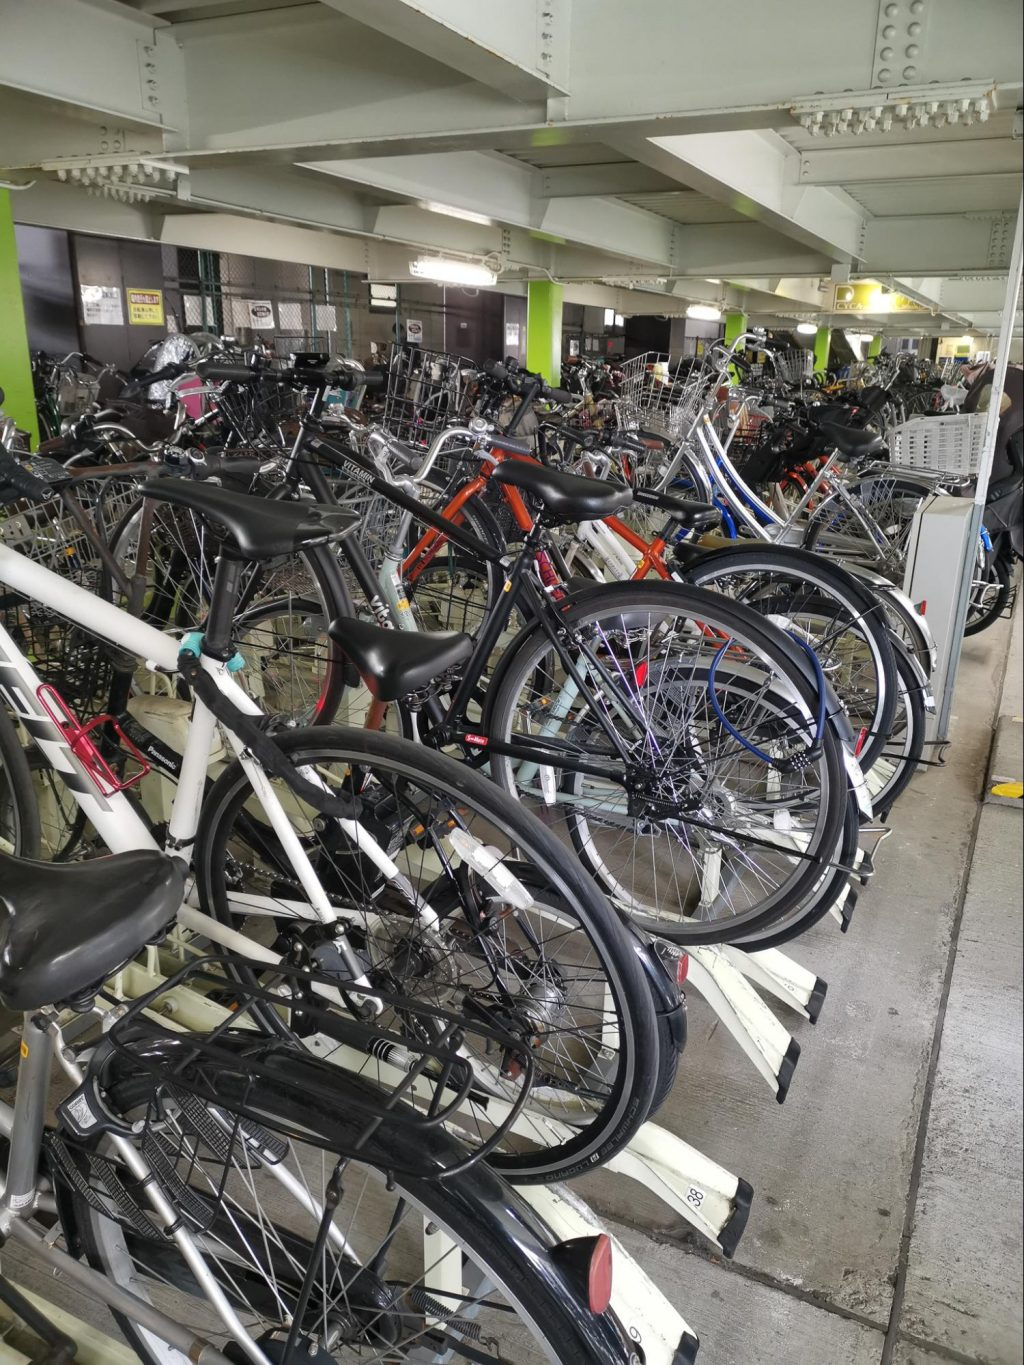 Trying to find my Docomo bike in an ocean of bicycles